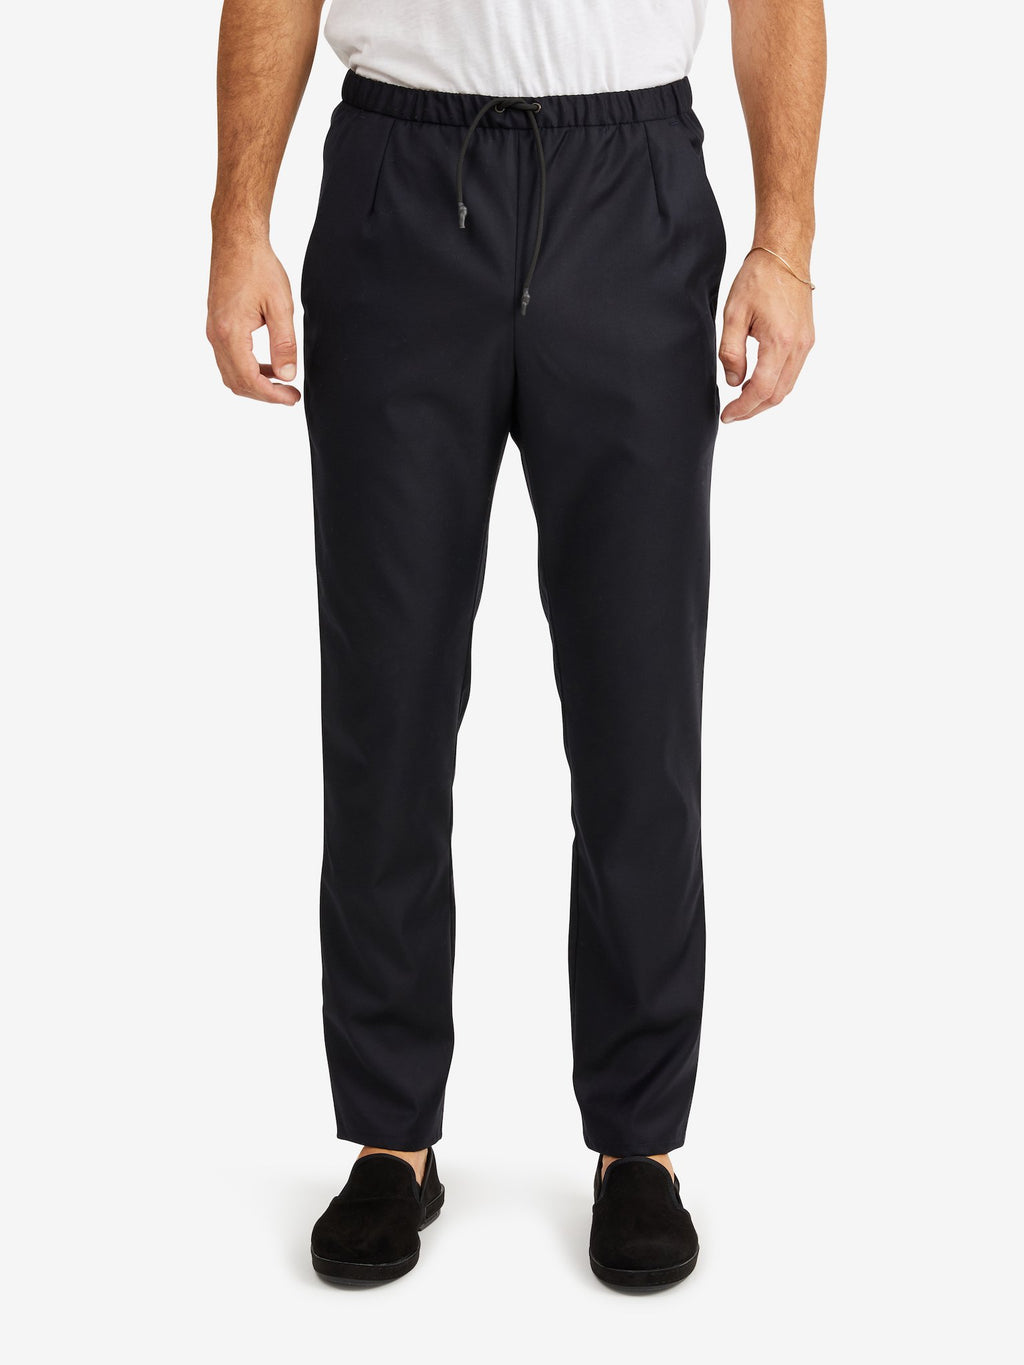 President's Superfine Loro Piana Wool Trouser